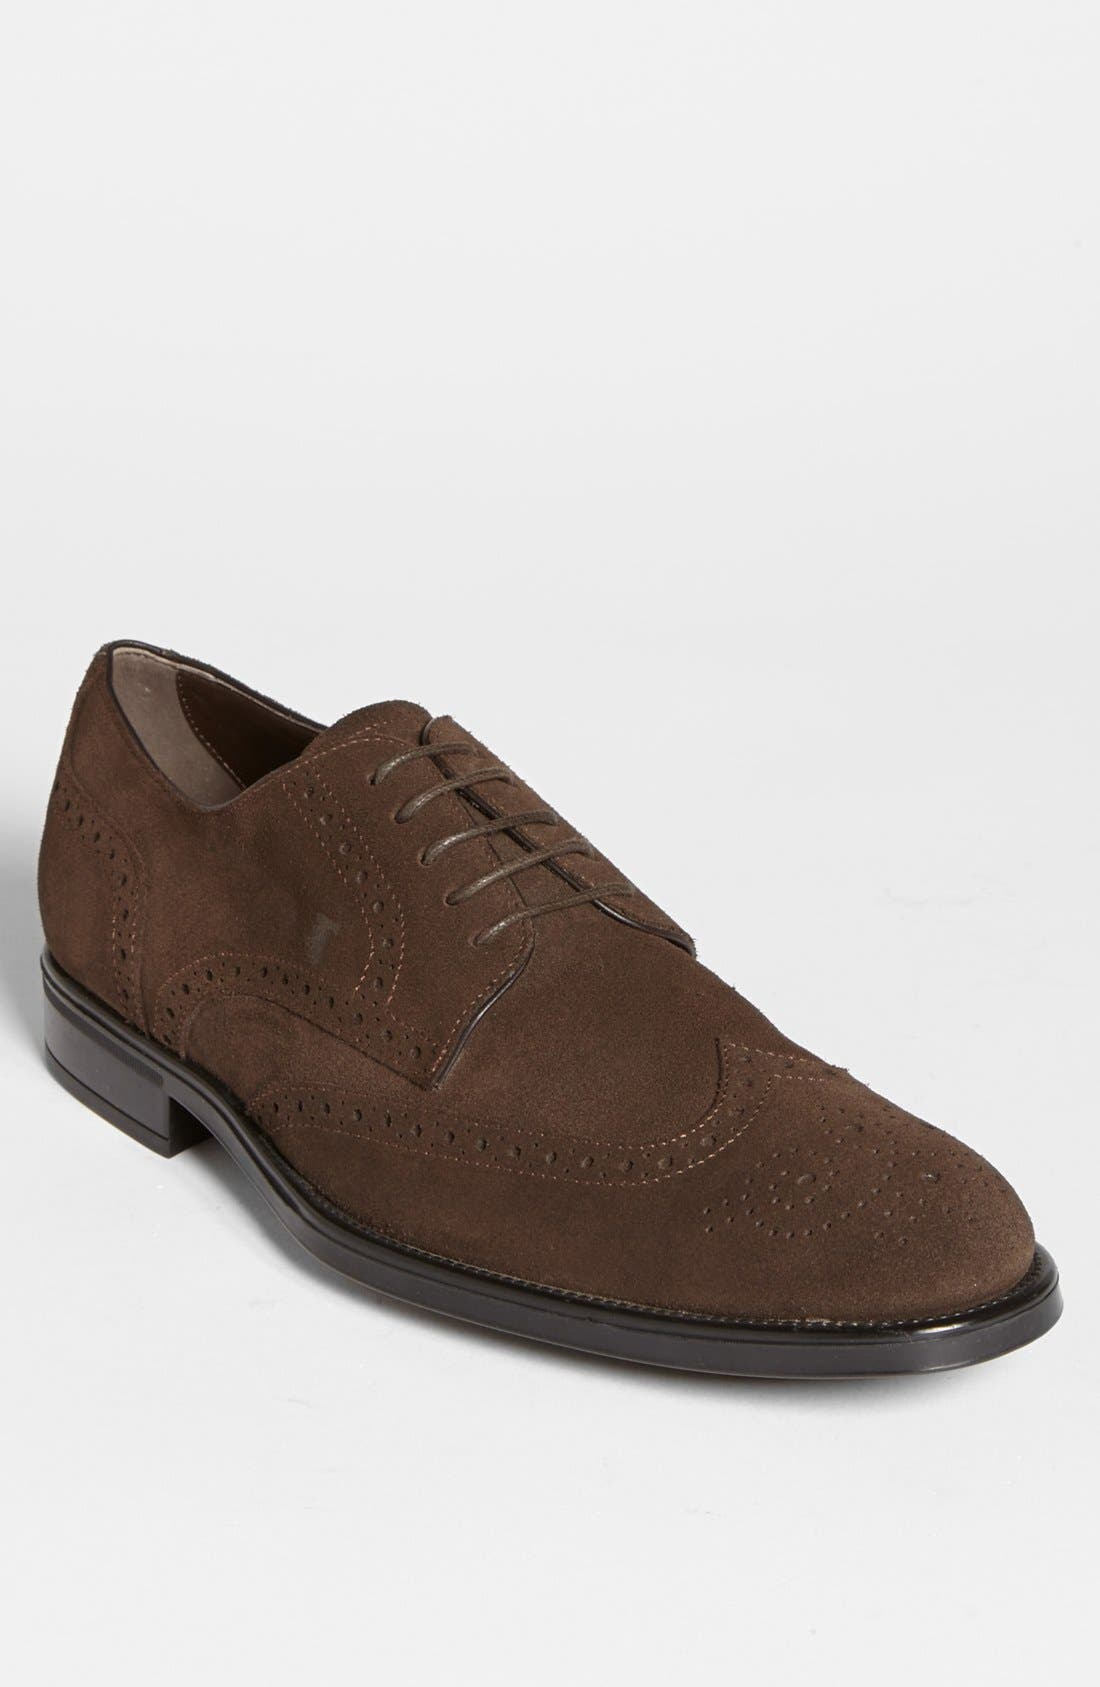 Main Image - Tod's 'Derby' Suede Wingtip